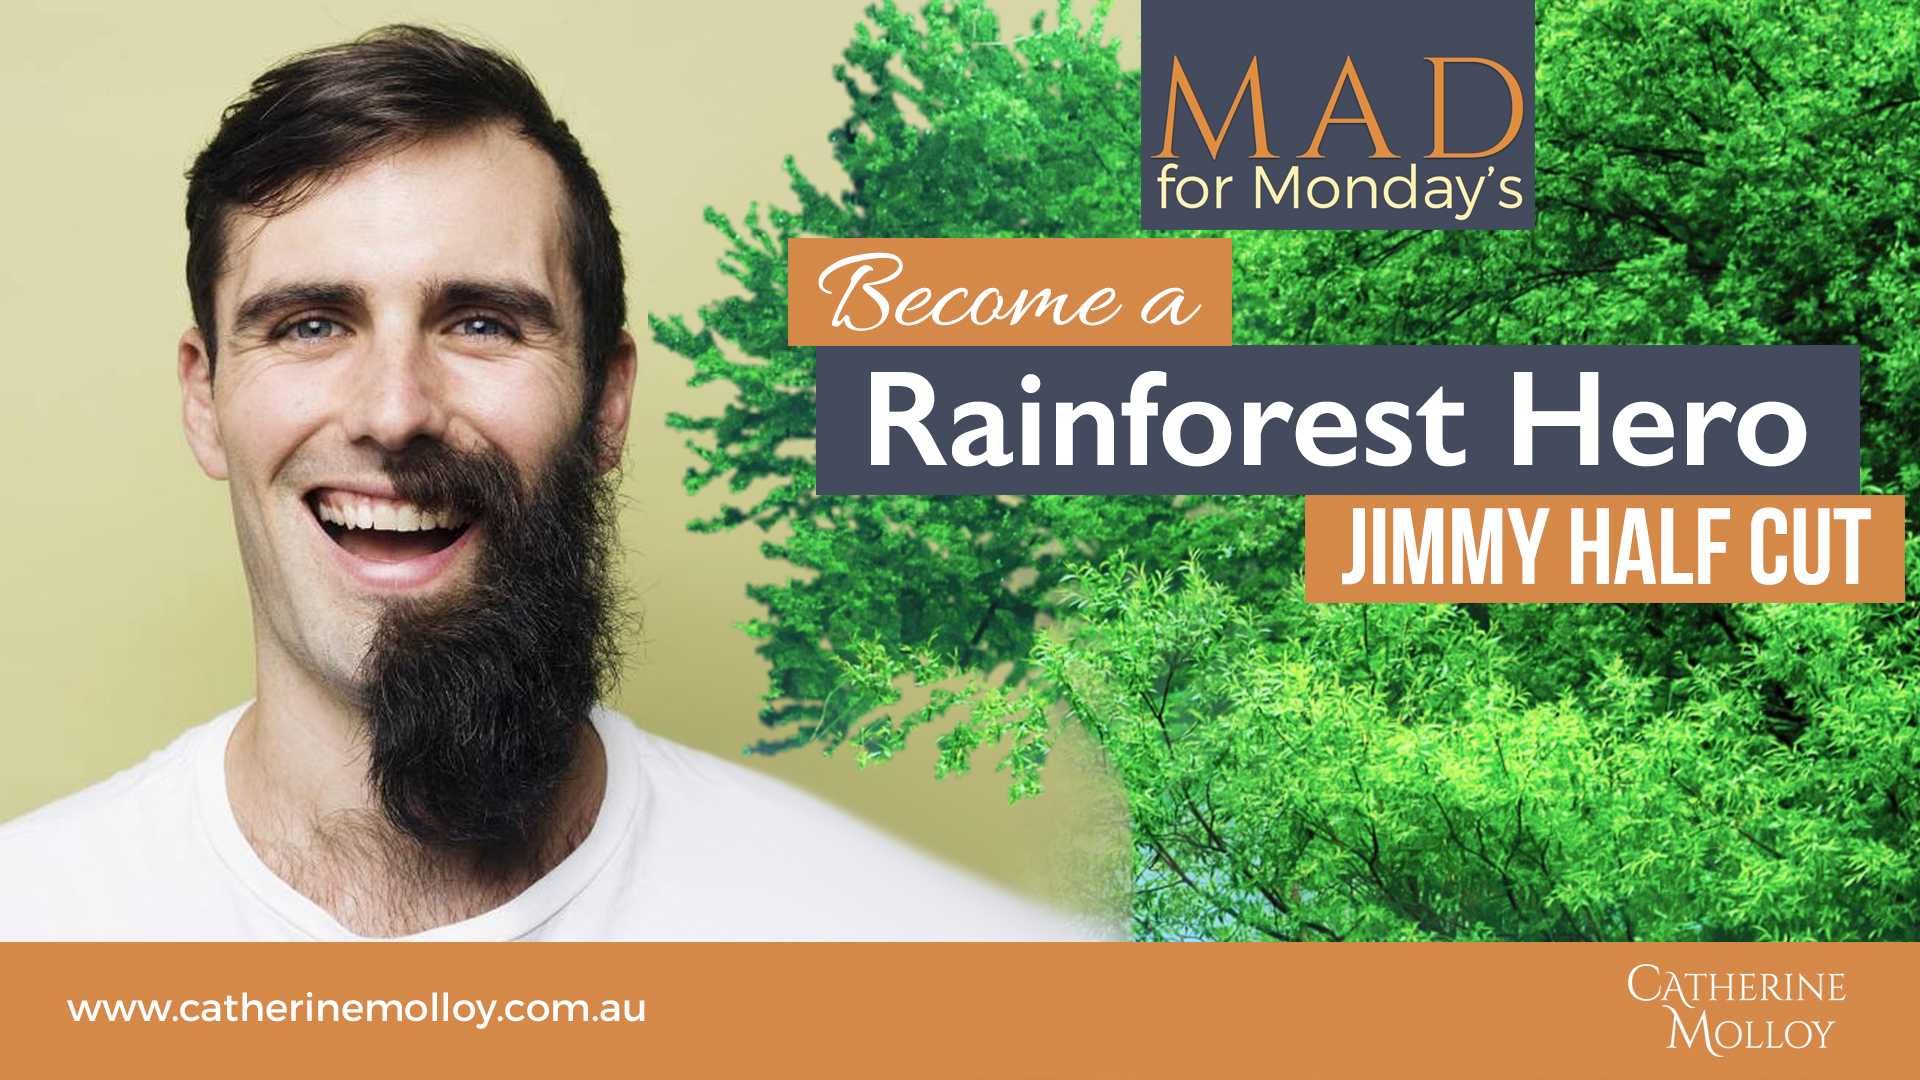 MAD for Monday's – Become a Rainforest Hero